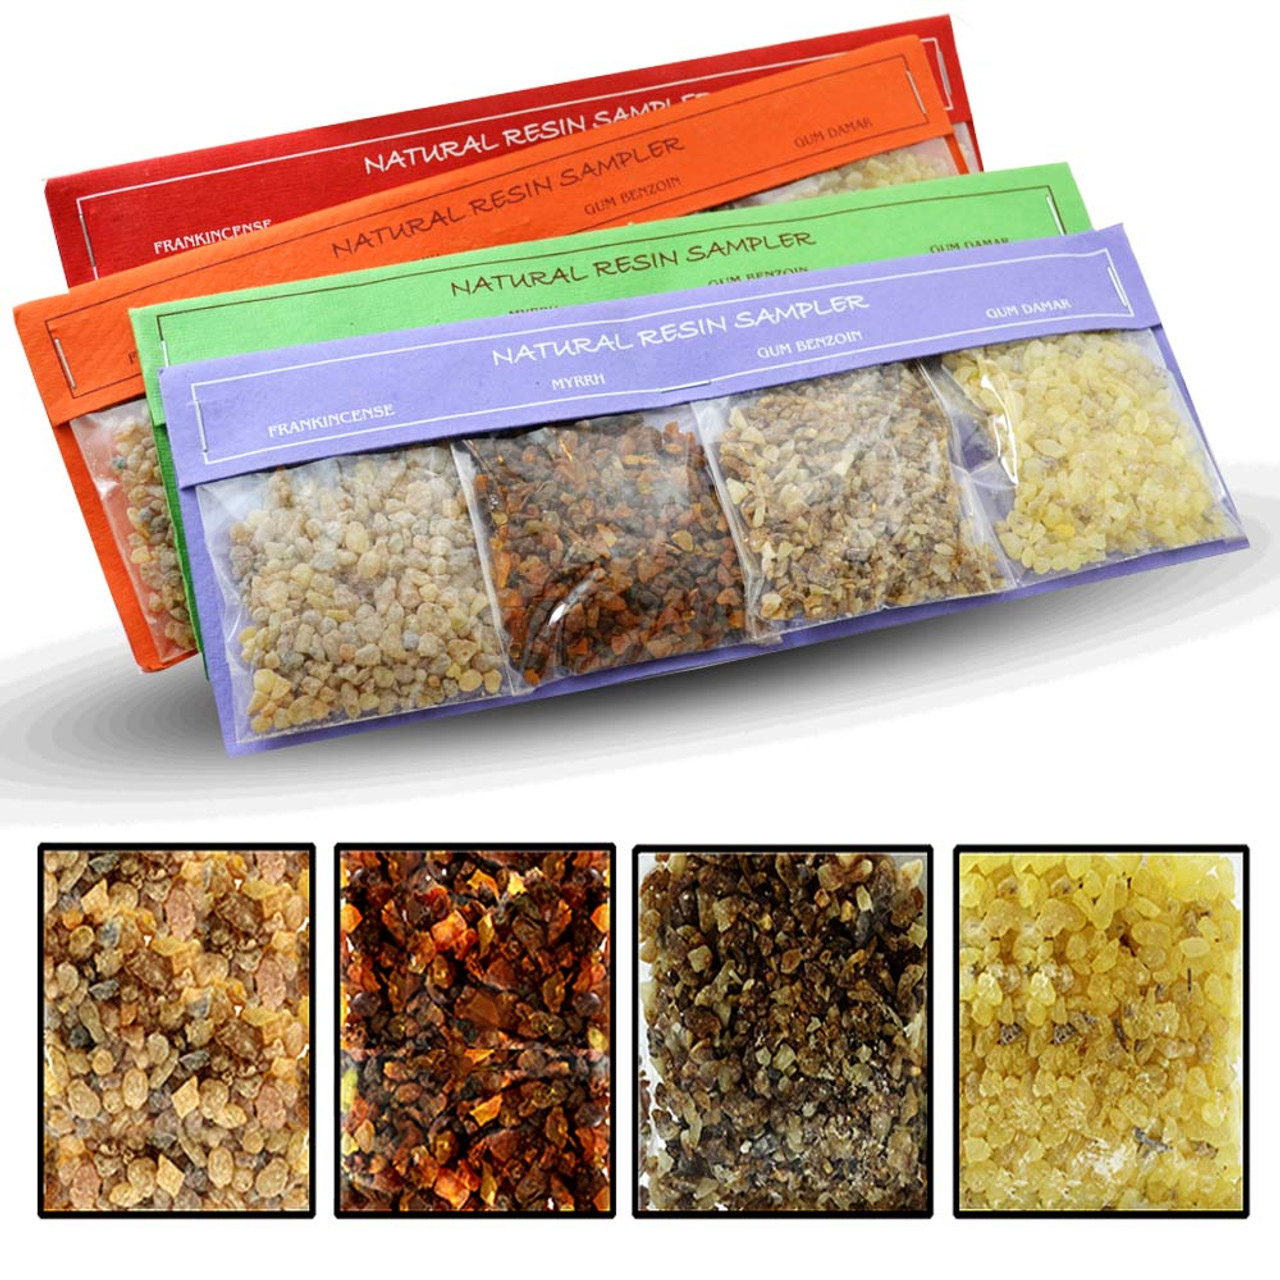 Natural Resin Incense Sampler with 4 Packets